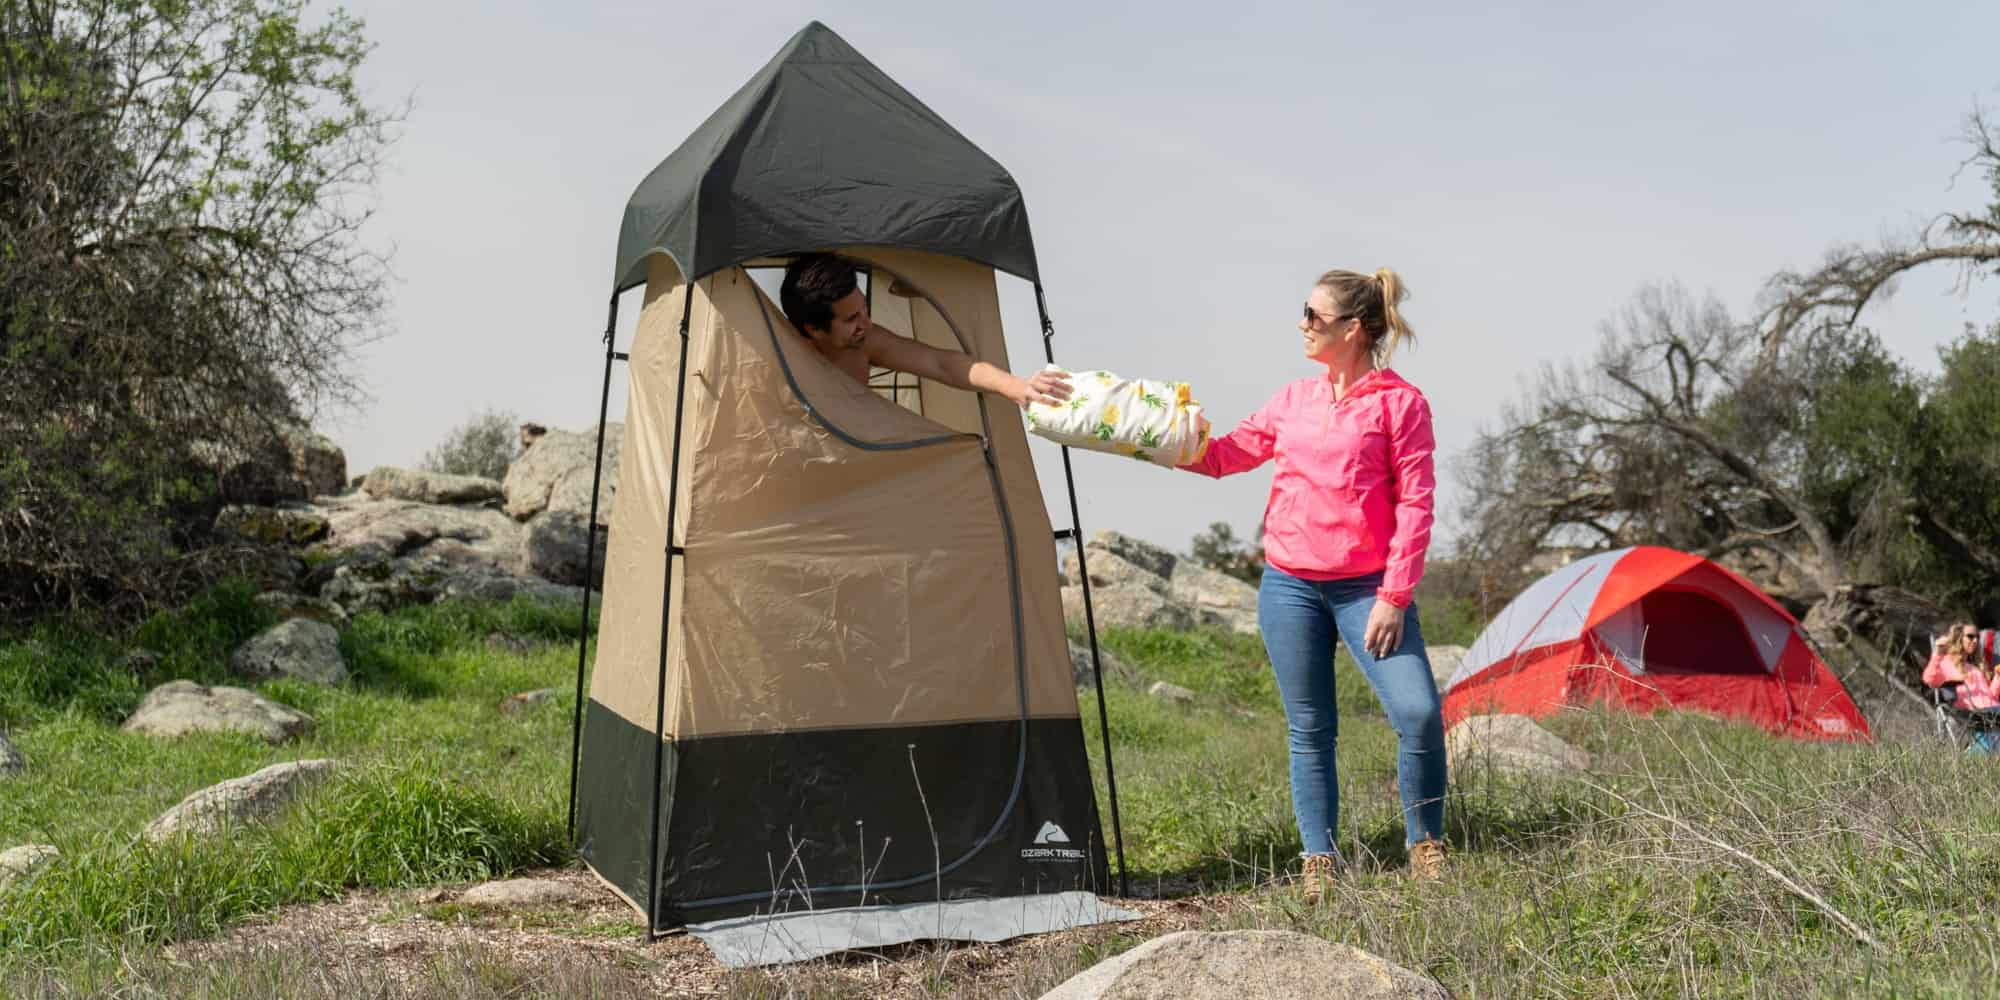 5 best shower tents for camping in 2021